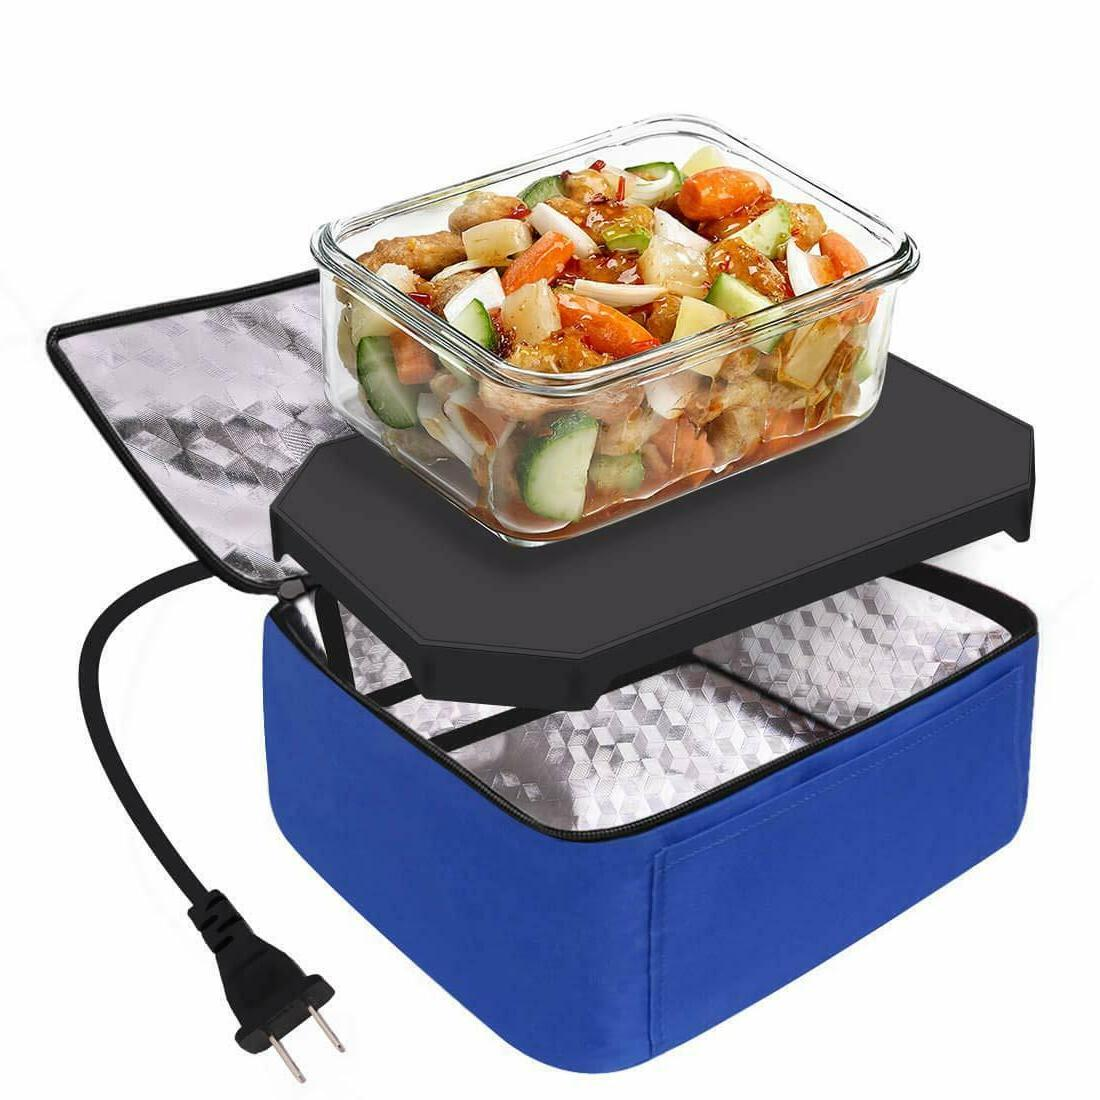 Portable Food Heater Lunch Box Oven 12V Office